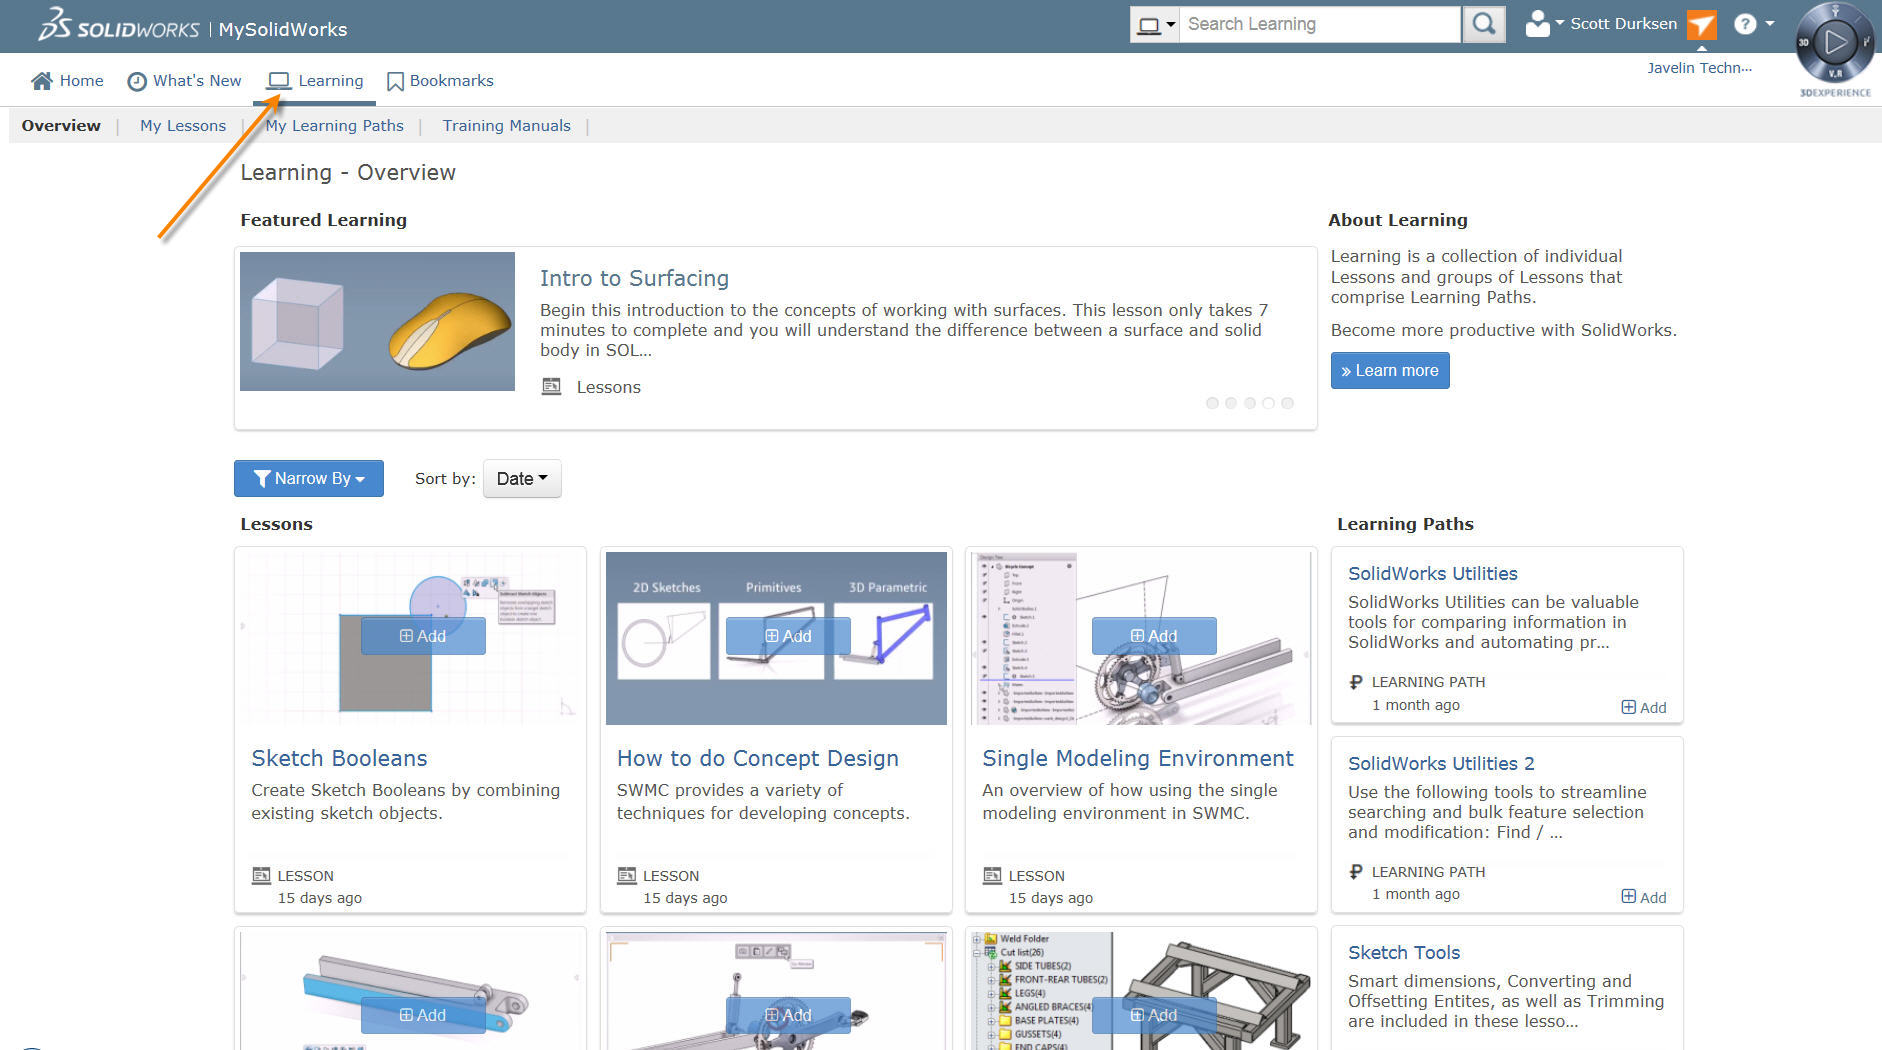 MySolidWorks Learning